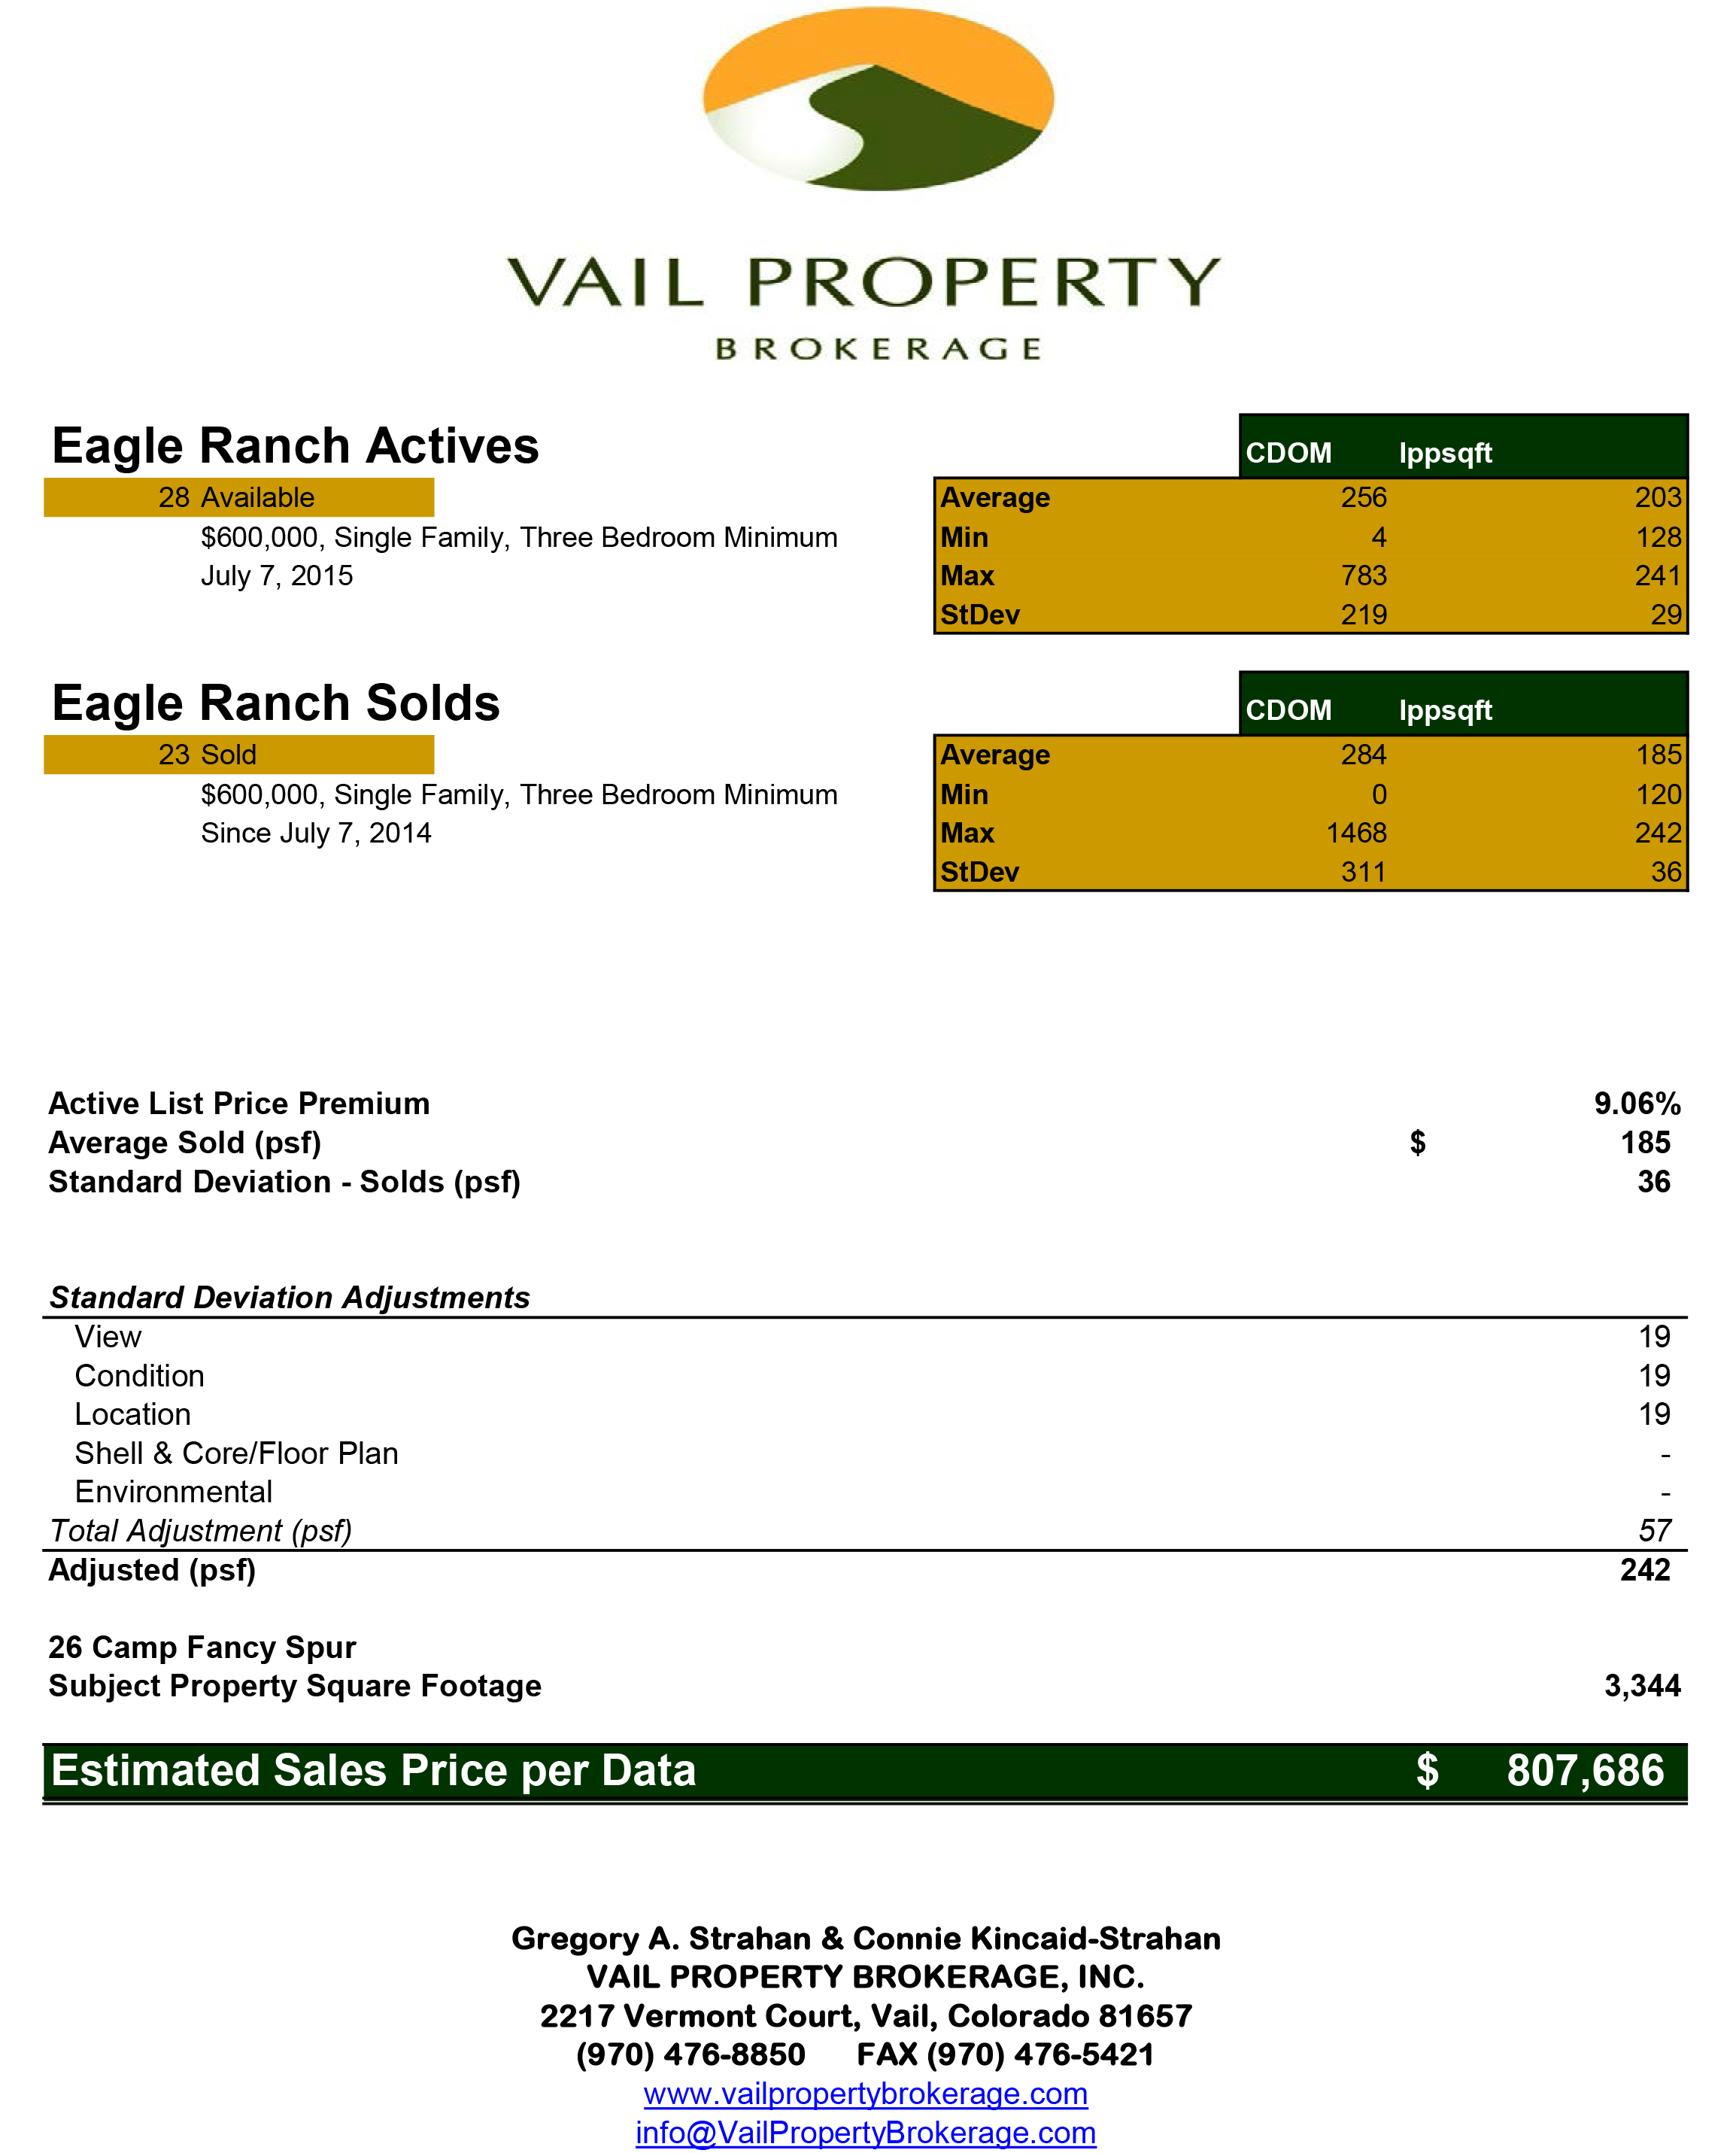 vailpropertybrokerage.com mls nugget lane